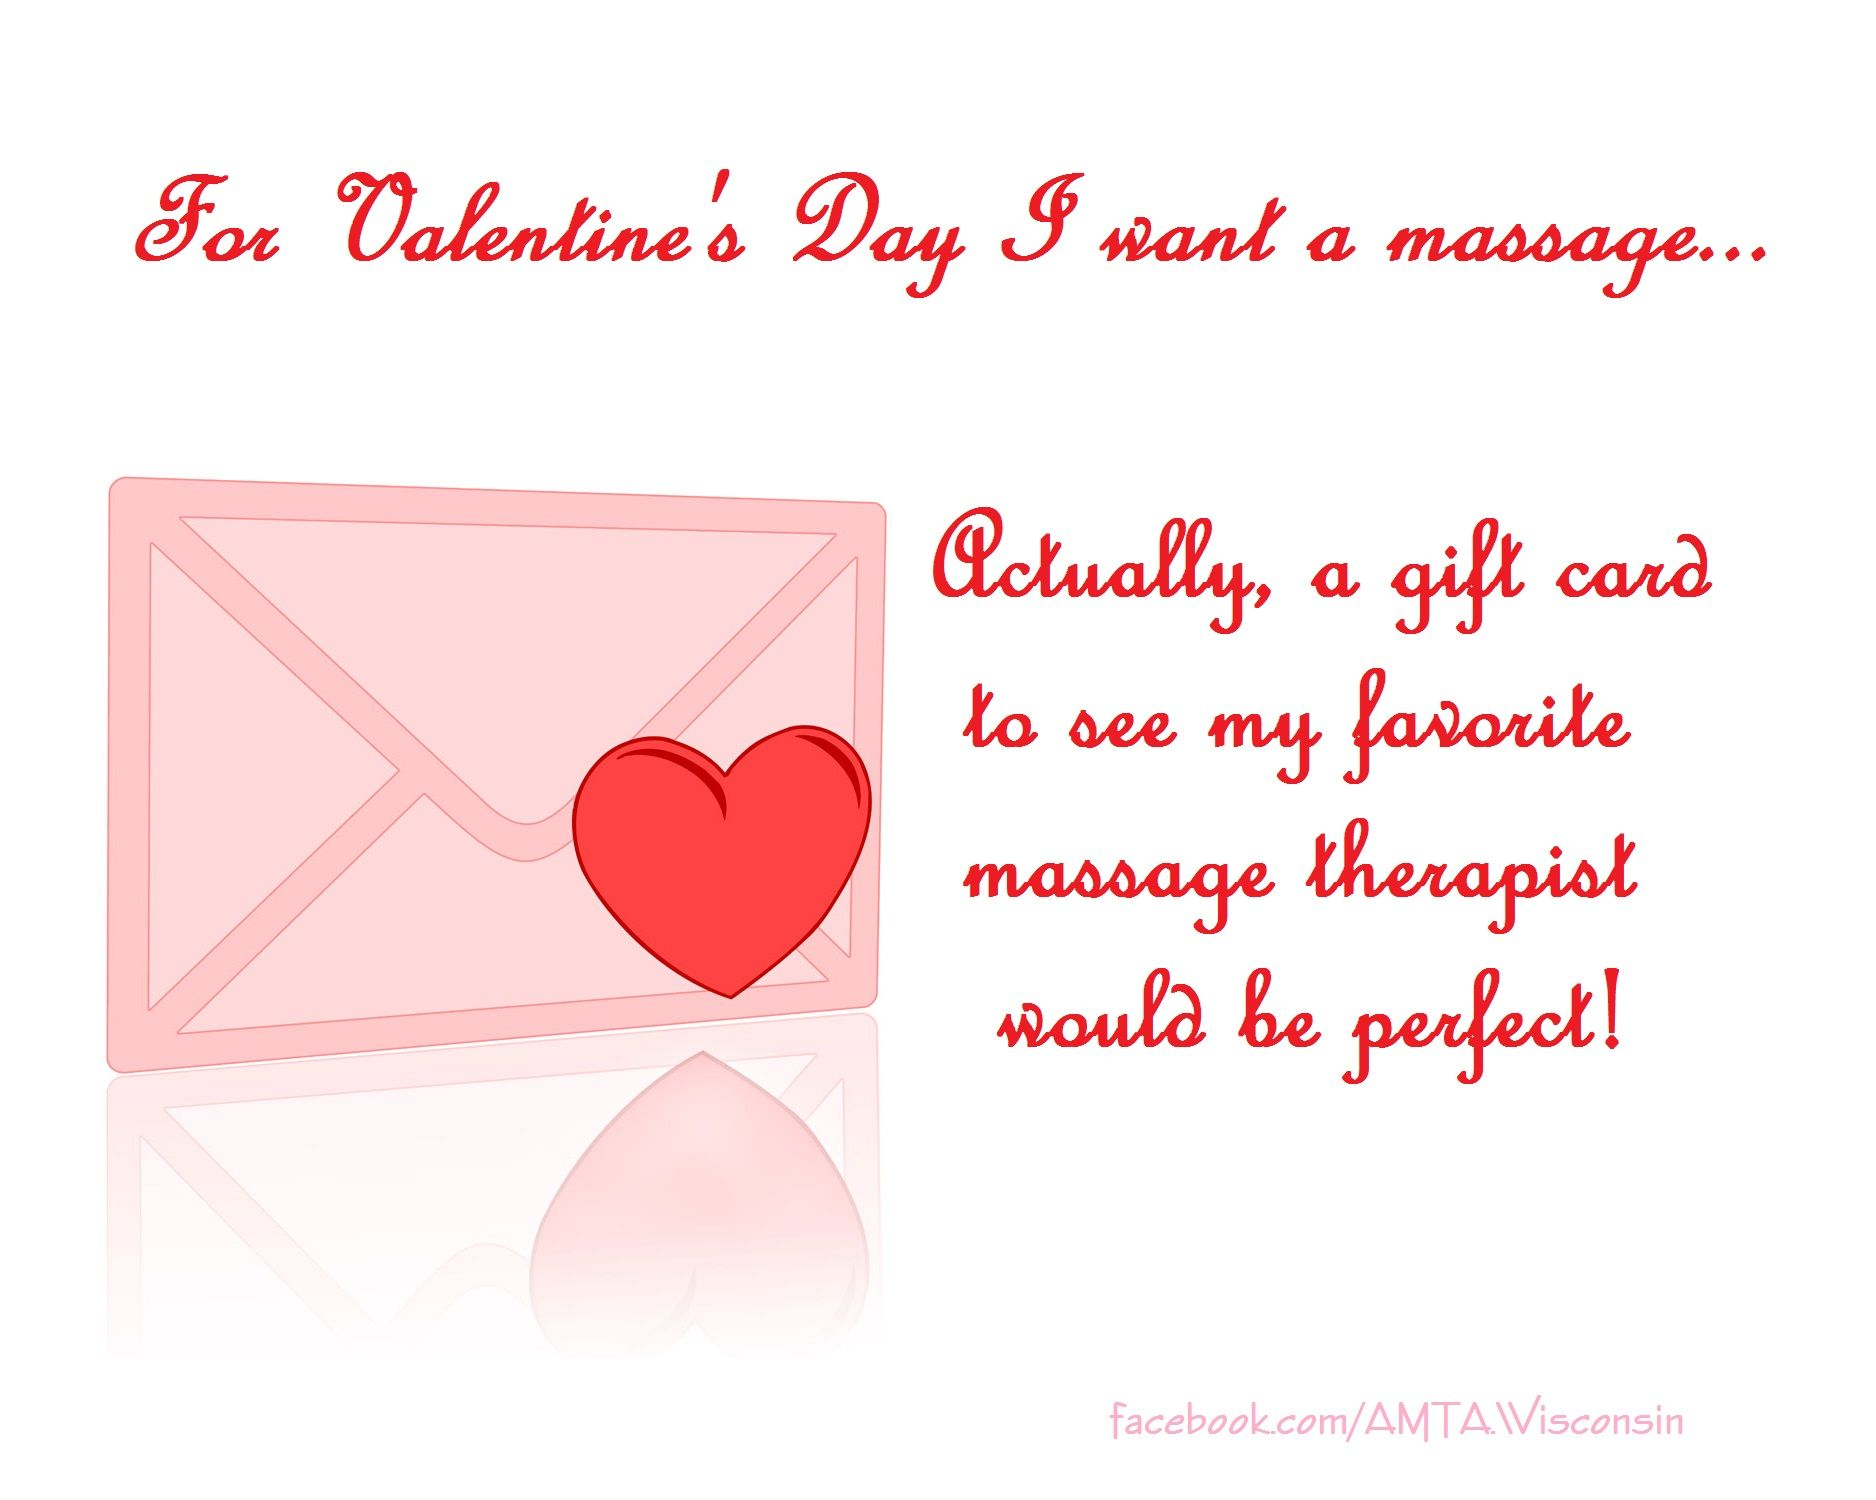 valentines day promote your massage gift certificate sales amtawiorg - Valentines Day Massage